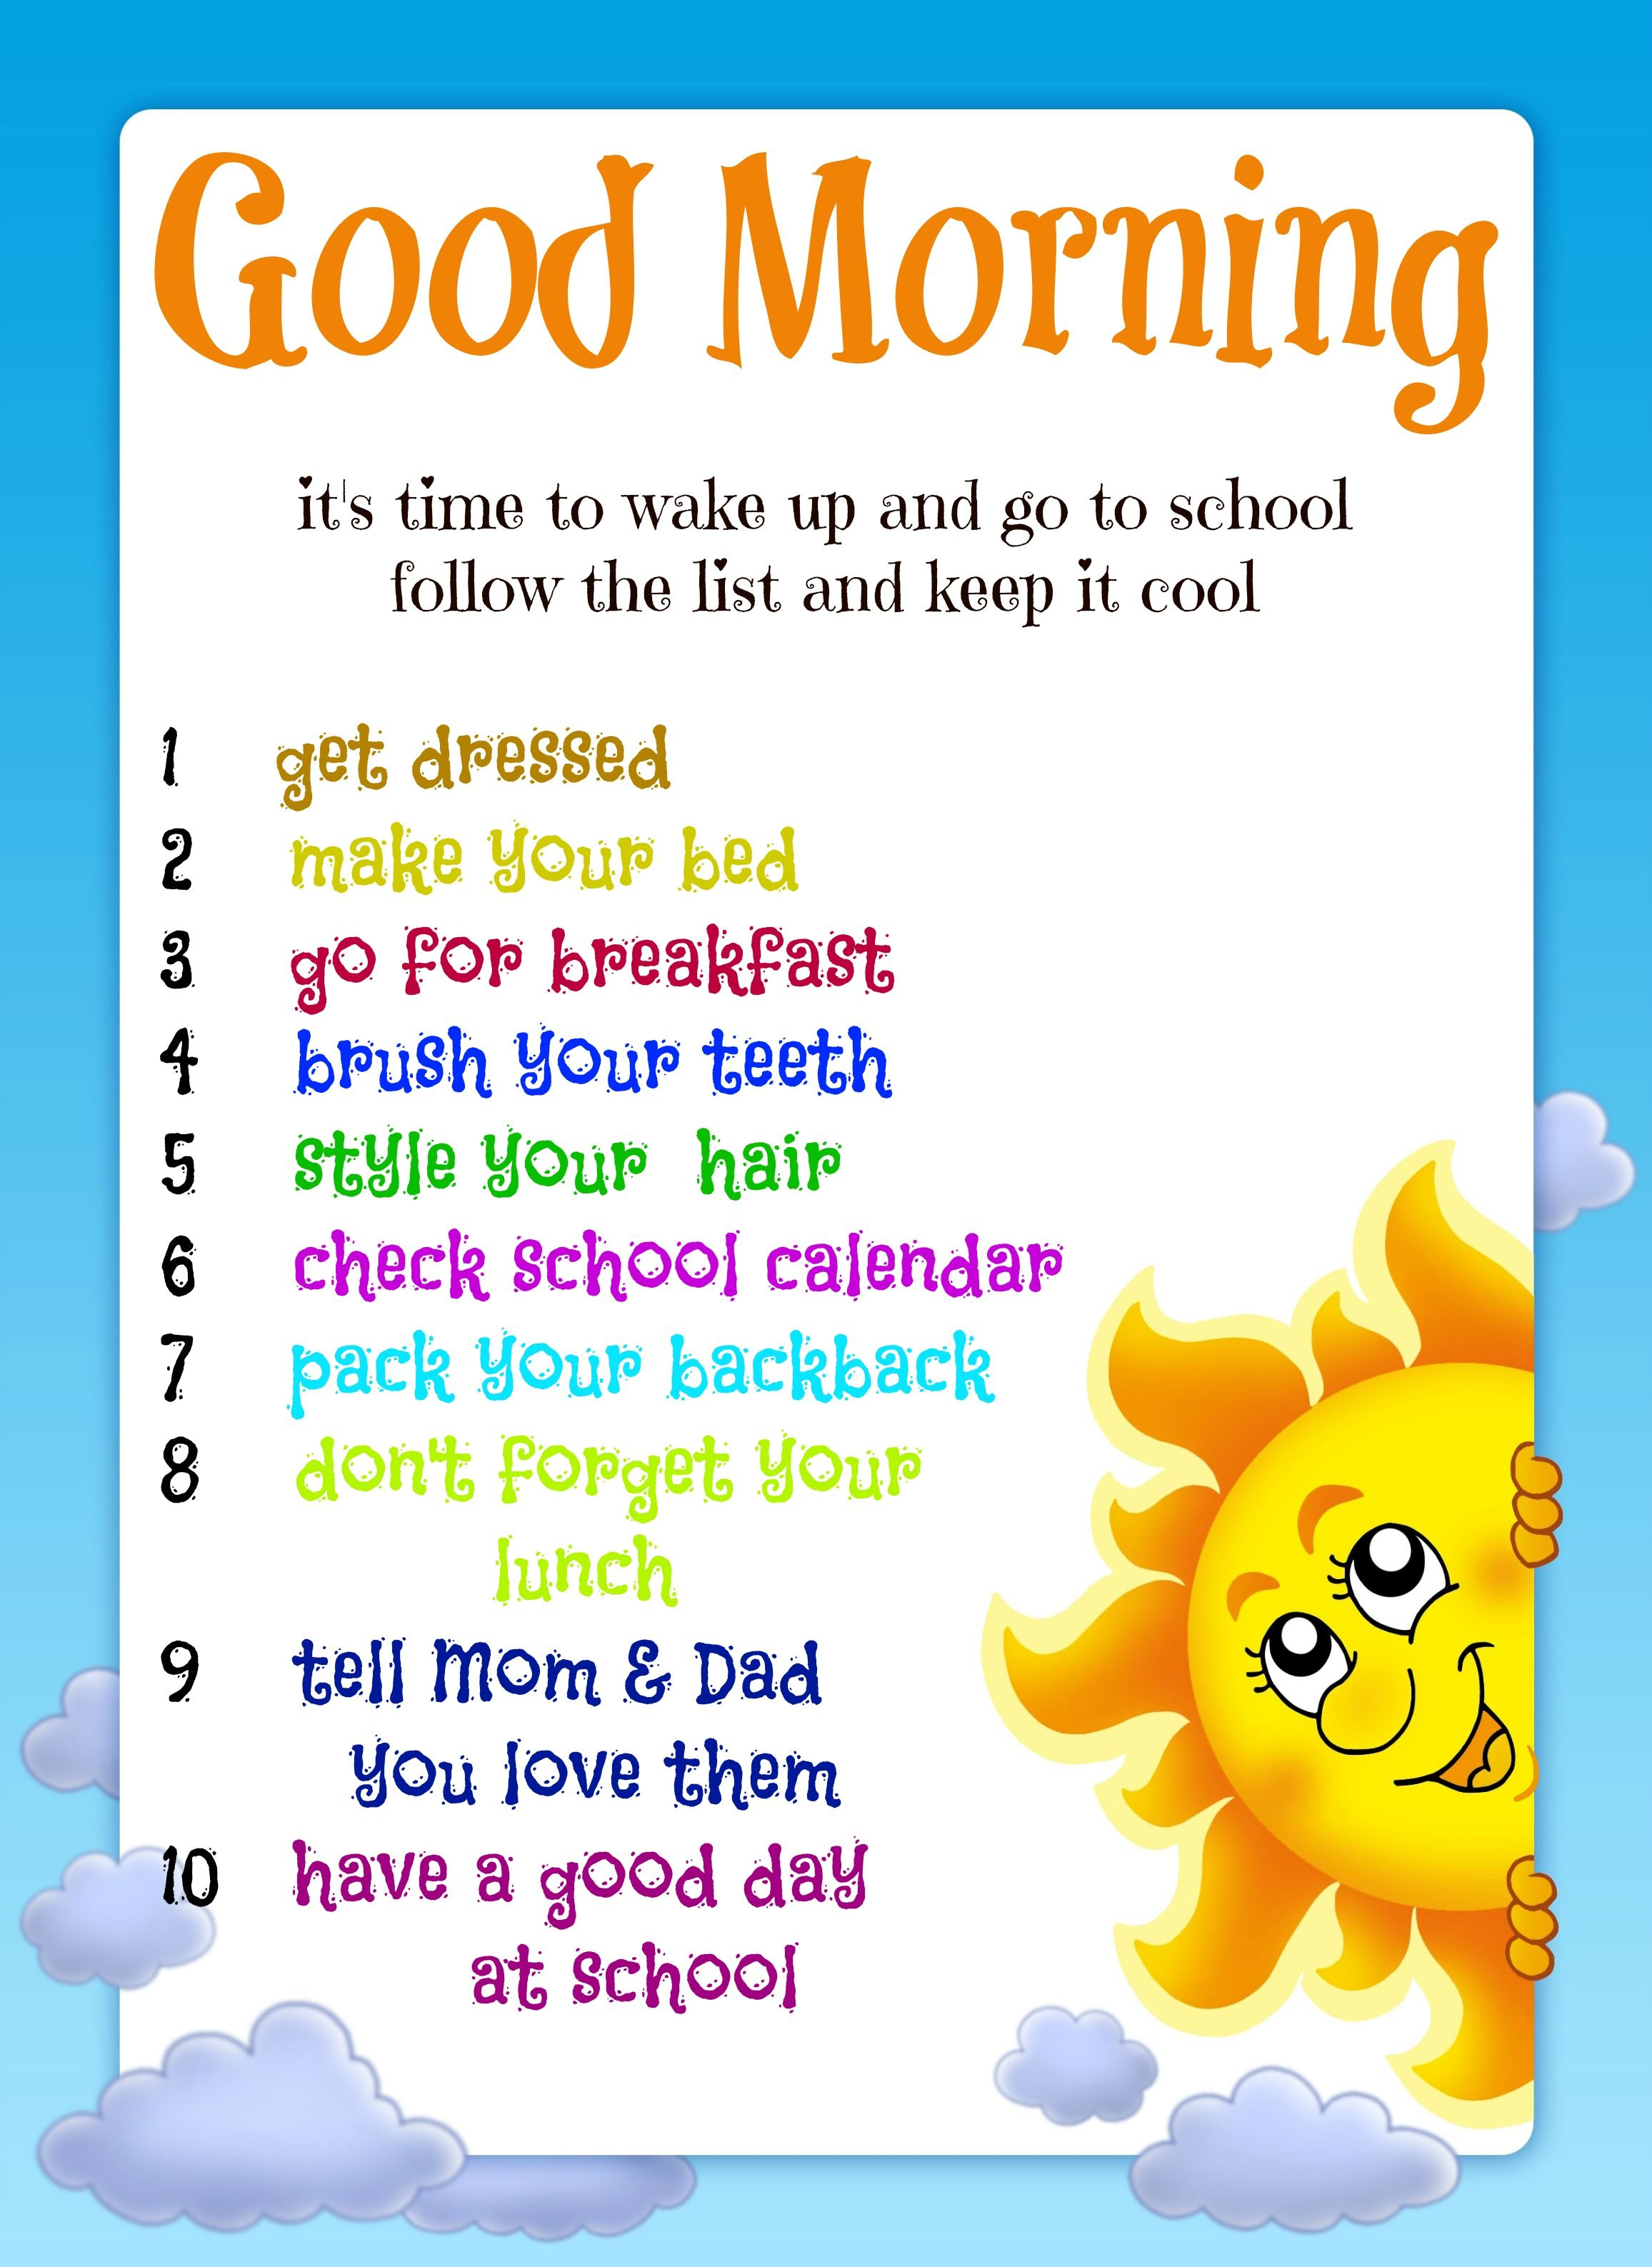 Good Morning Routine Printable Link Also Includes Bedtime